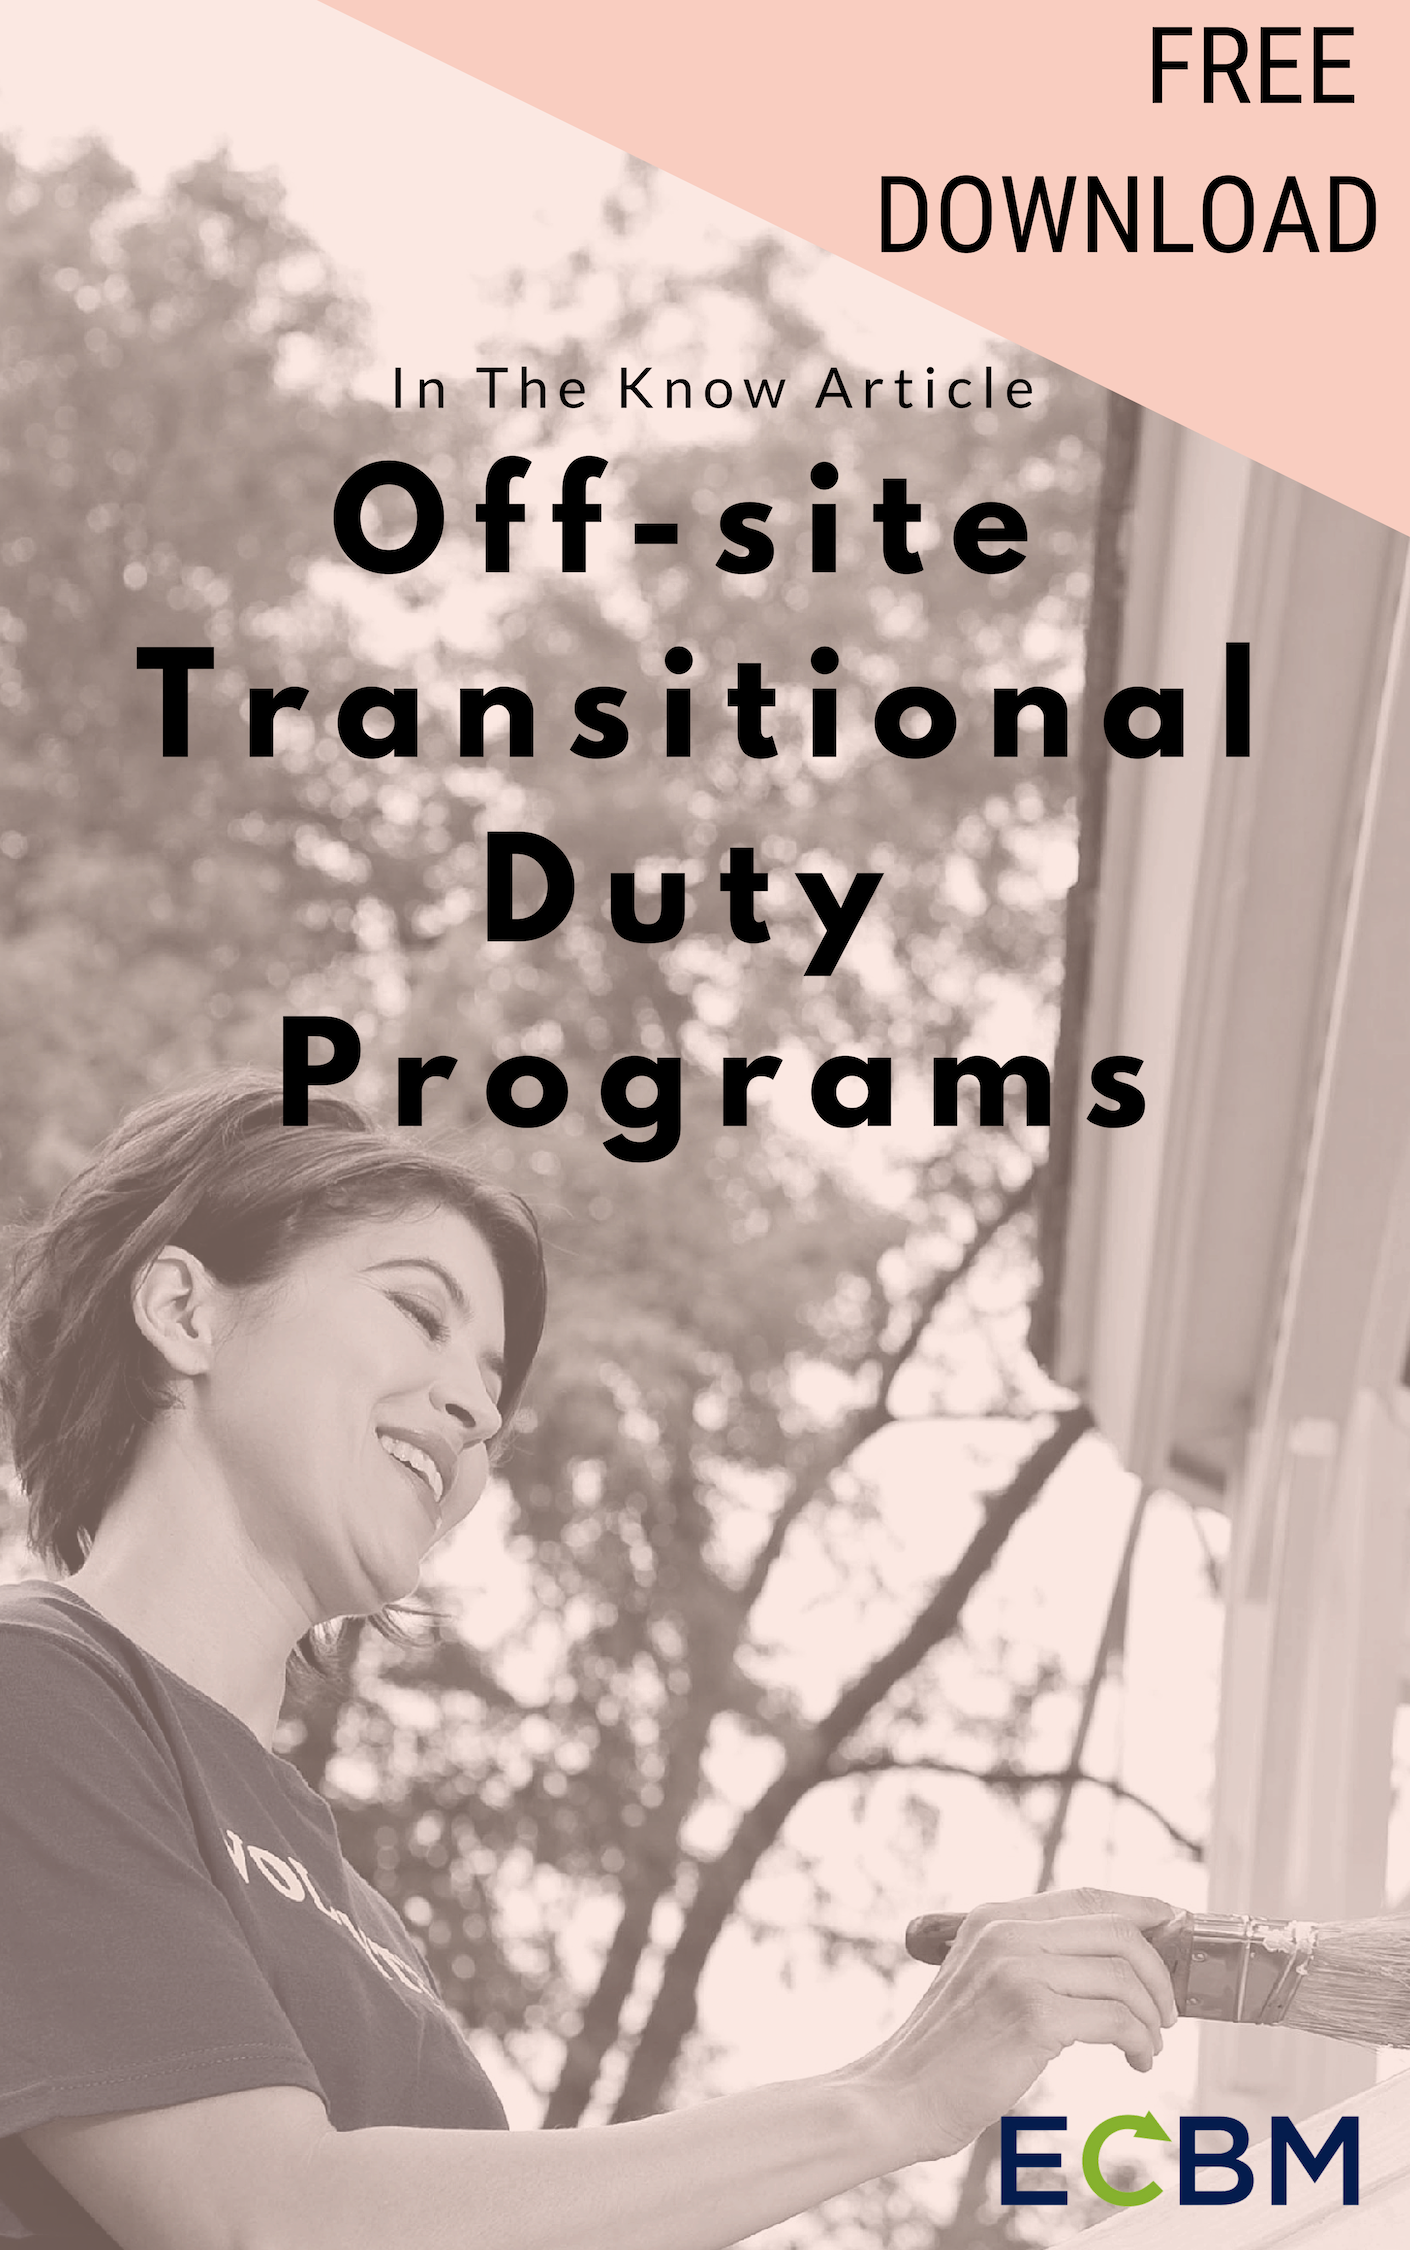 Off-site Transitional Duty Programs-2